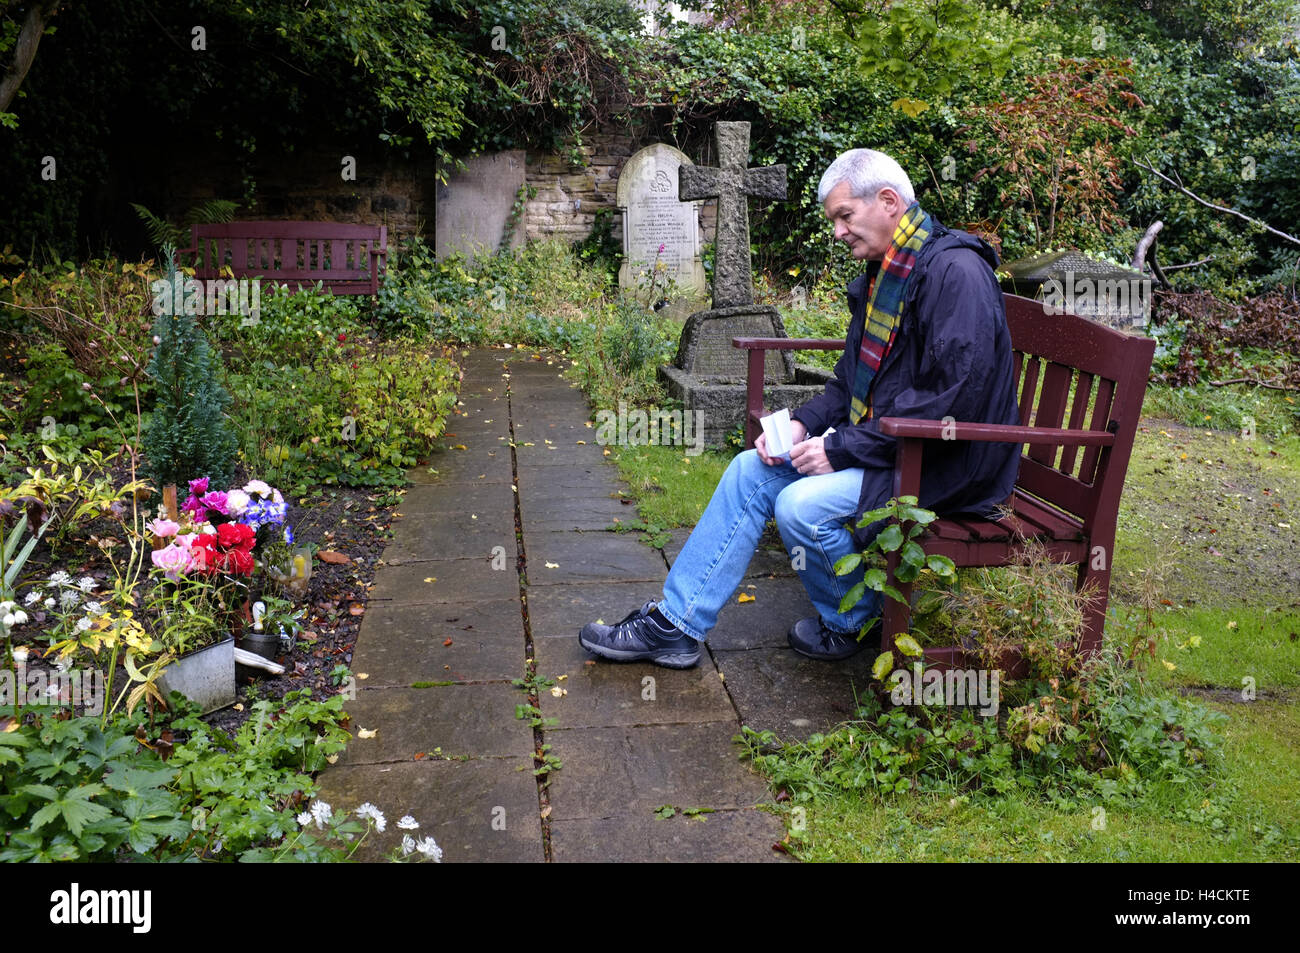 Man Grieving at Graveside - Stock Image